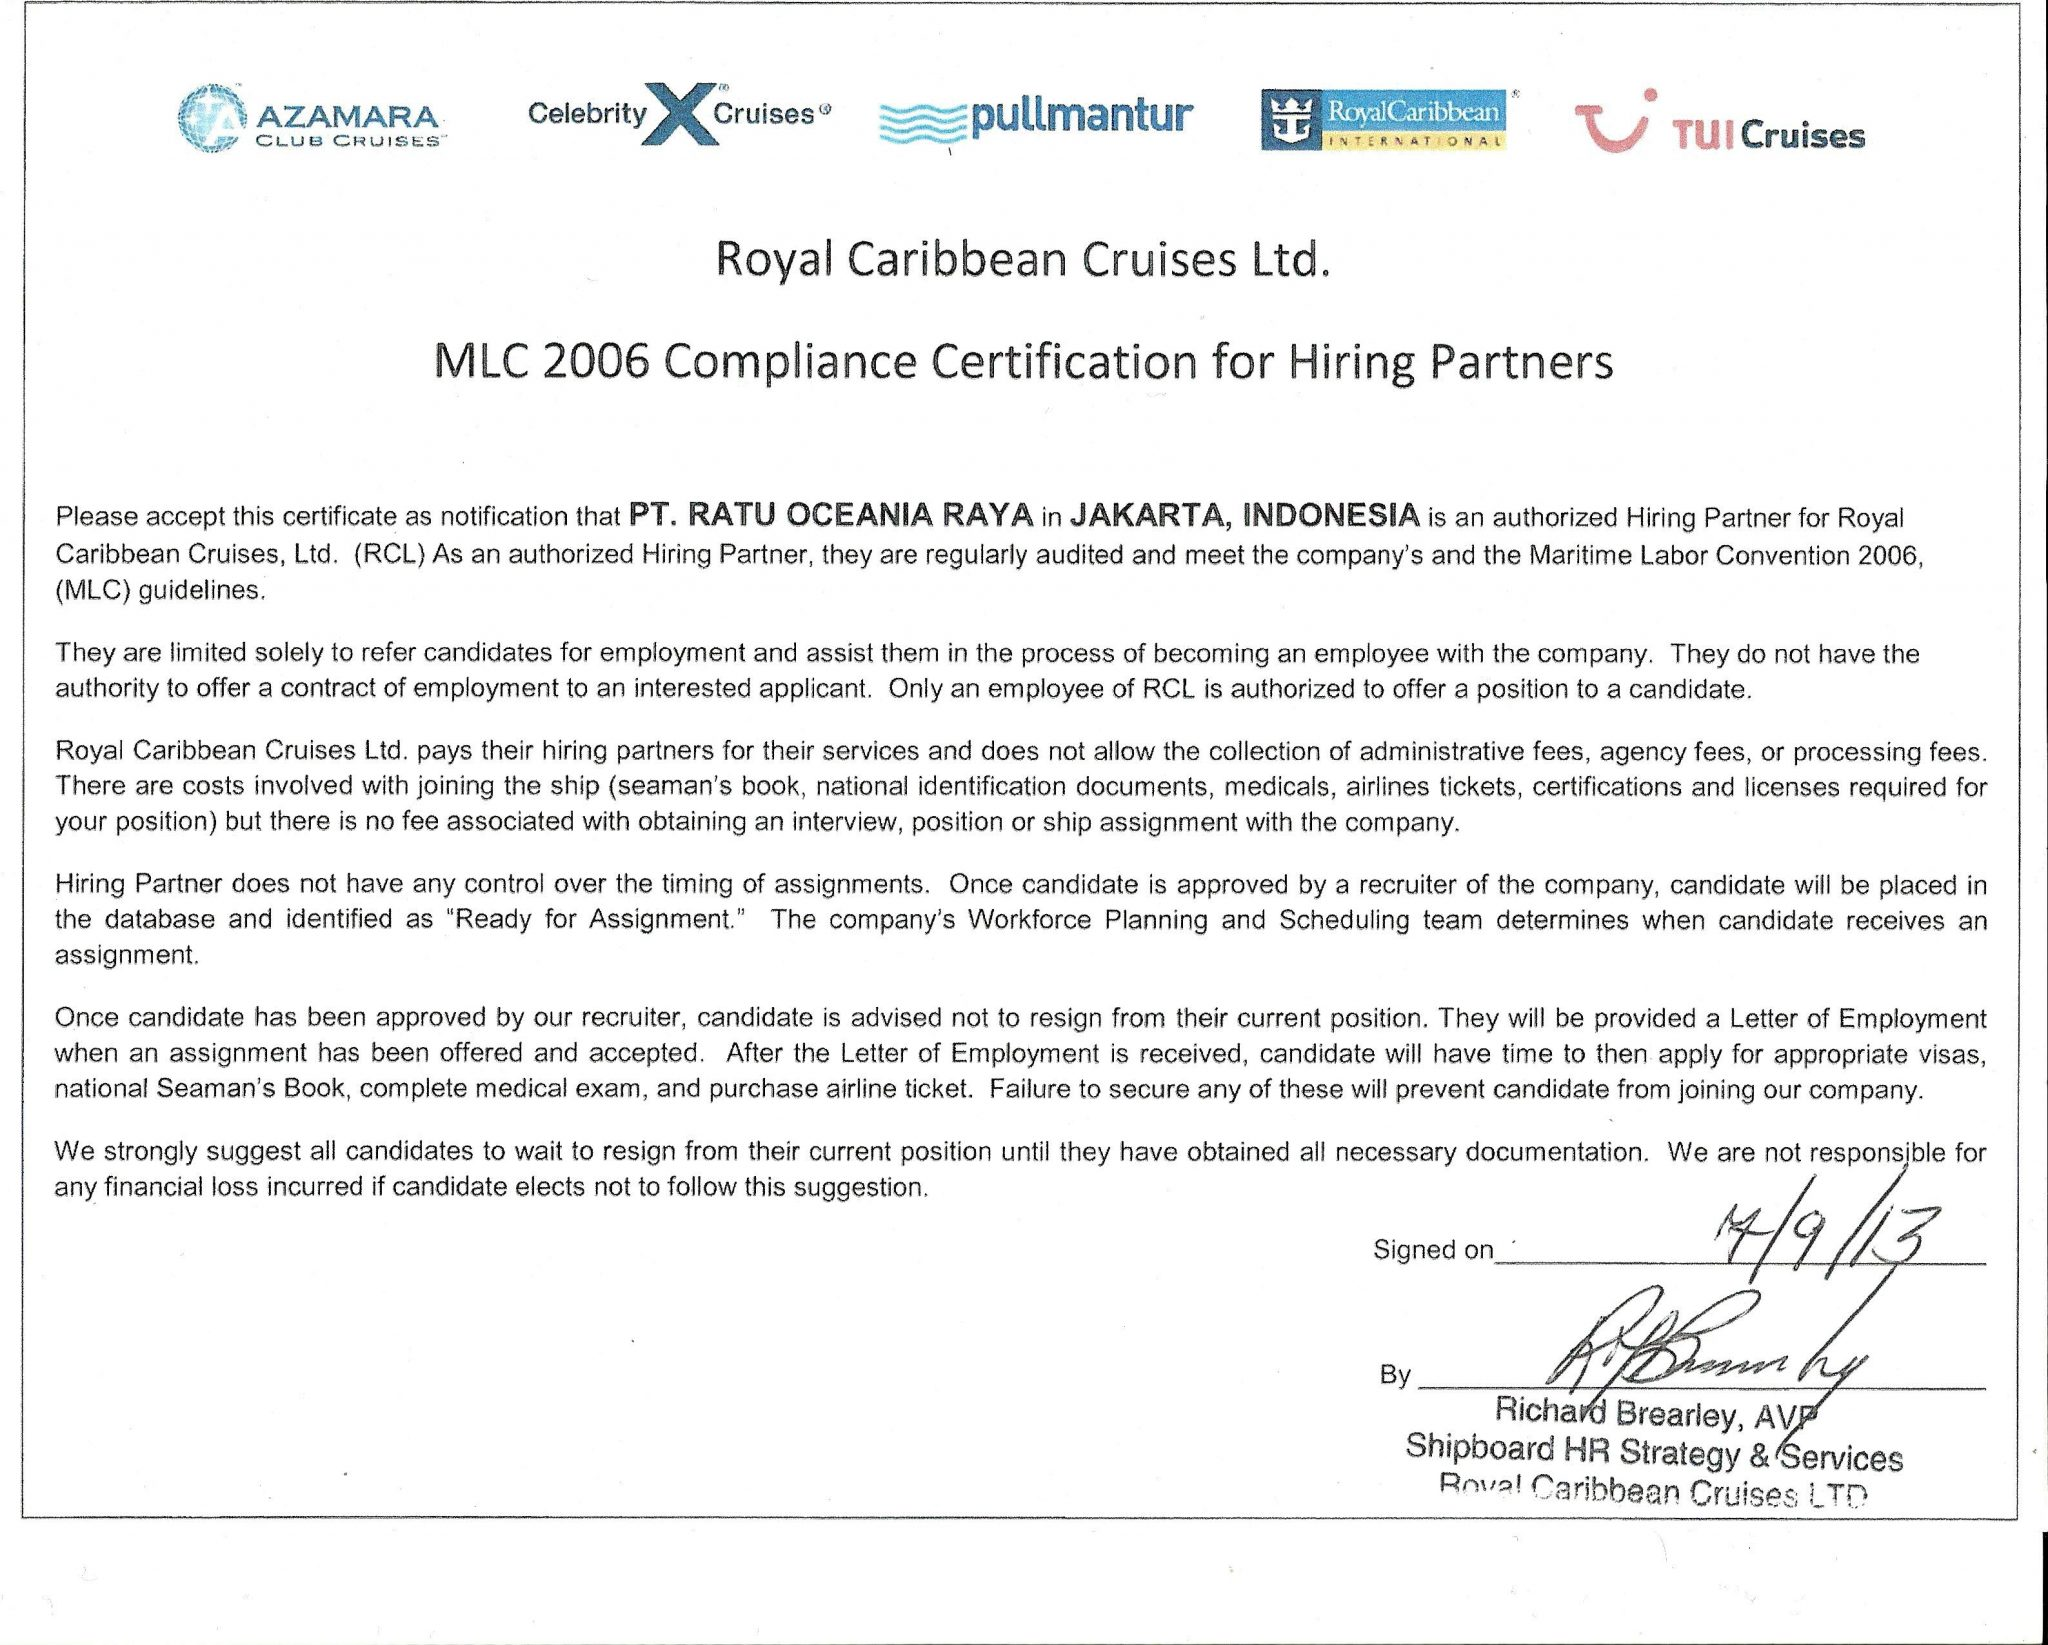 ACHIVEMENT-MLC-2006-ROYAL-CARIBBEAN